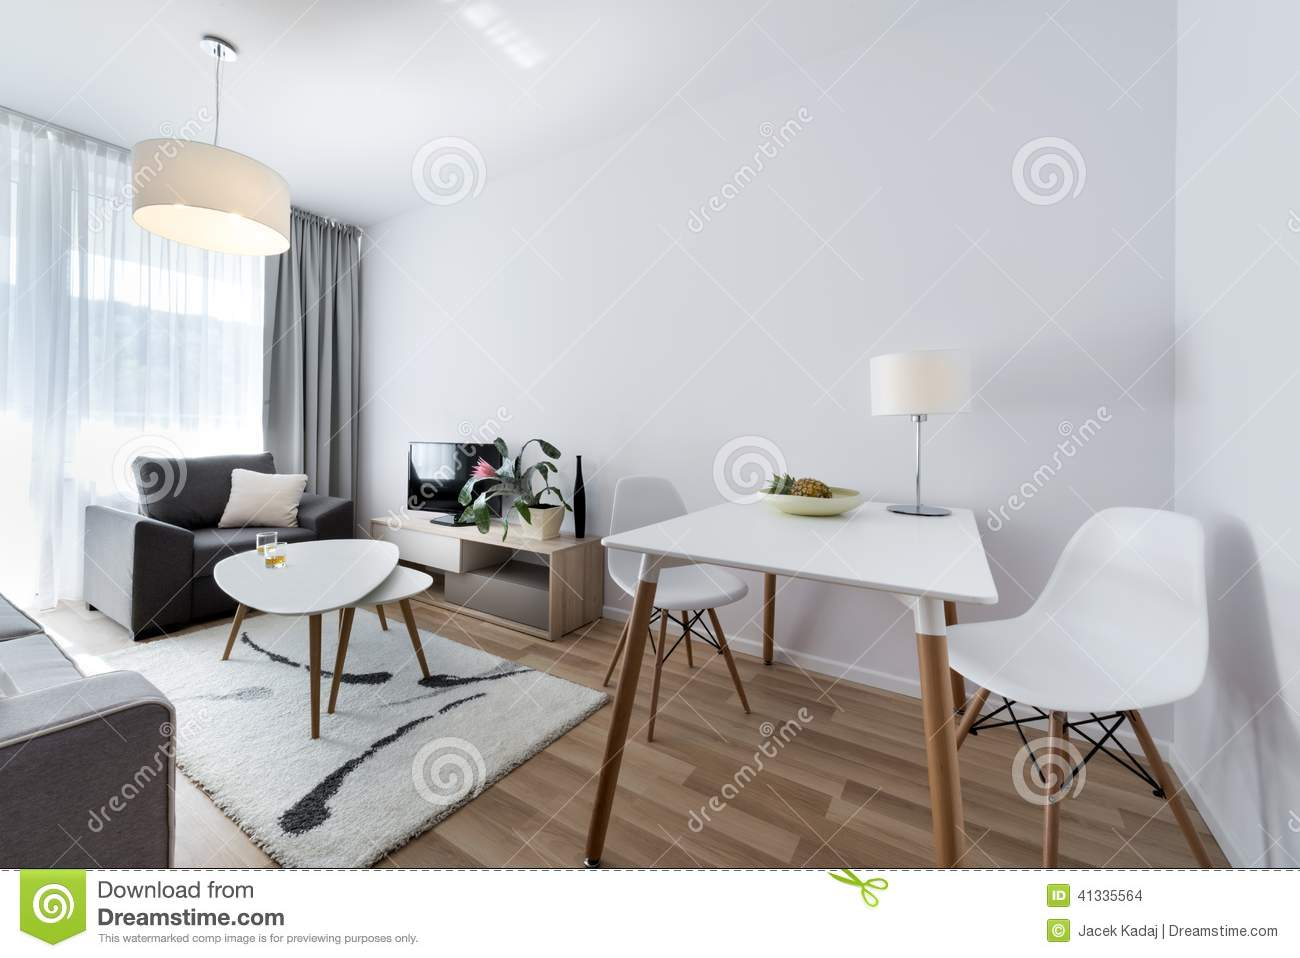 Stanza moderna di interior design nello stile scandinavo for Interior design moderno